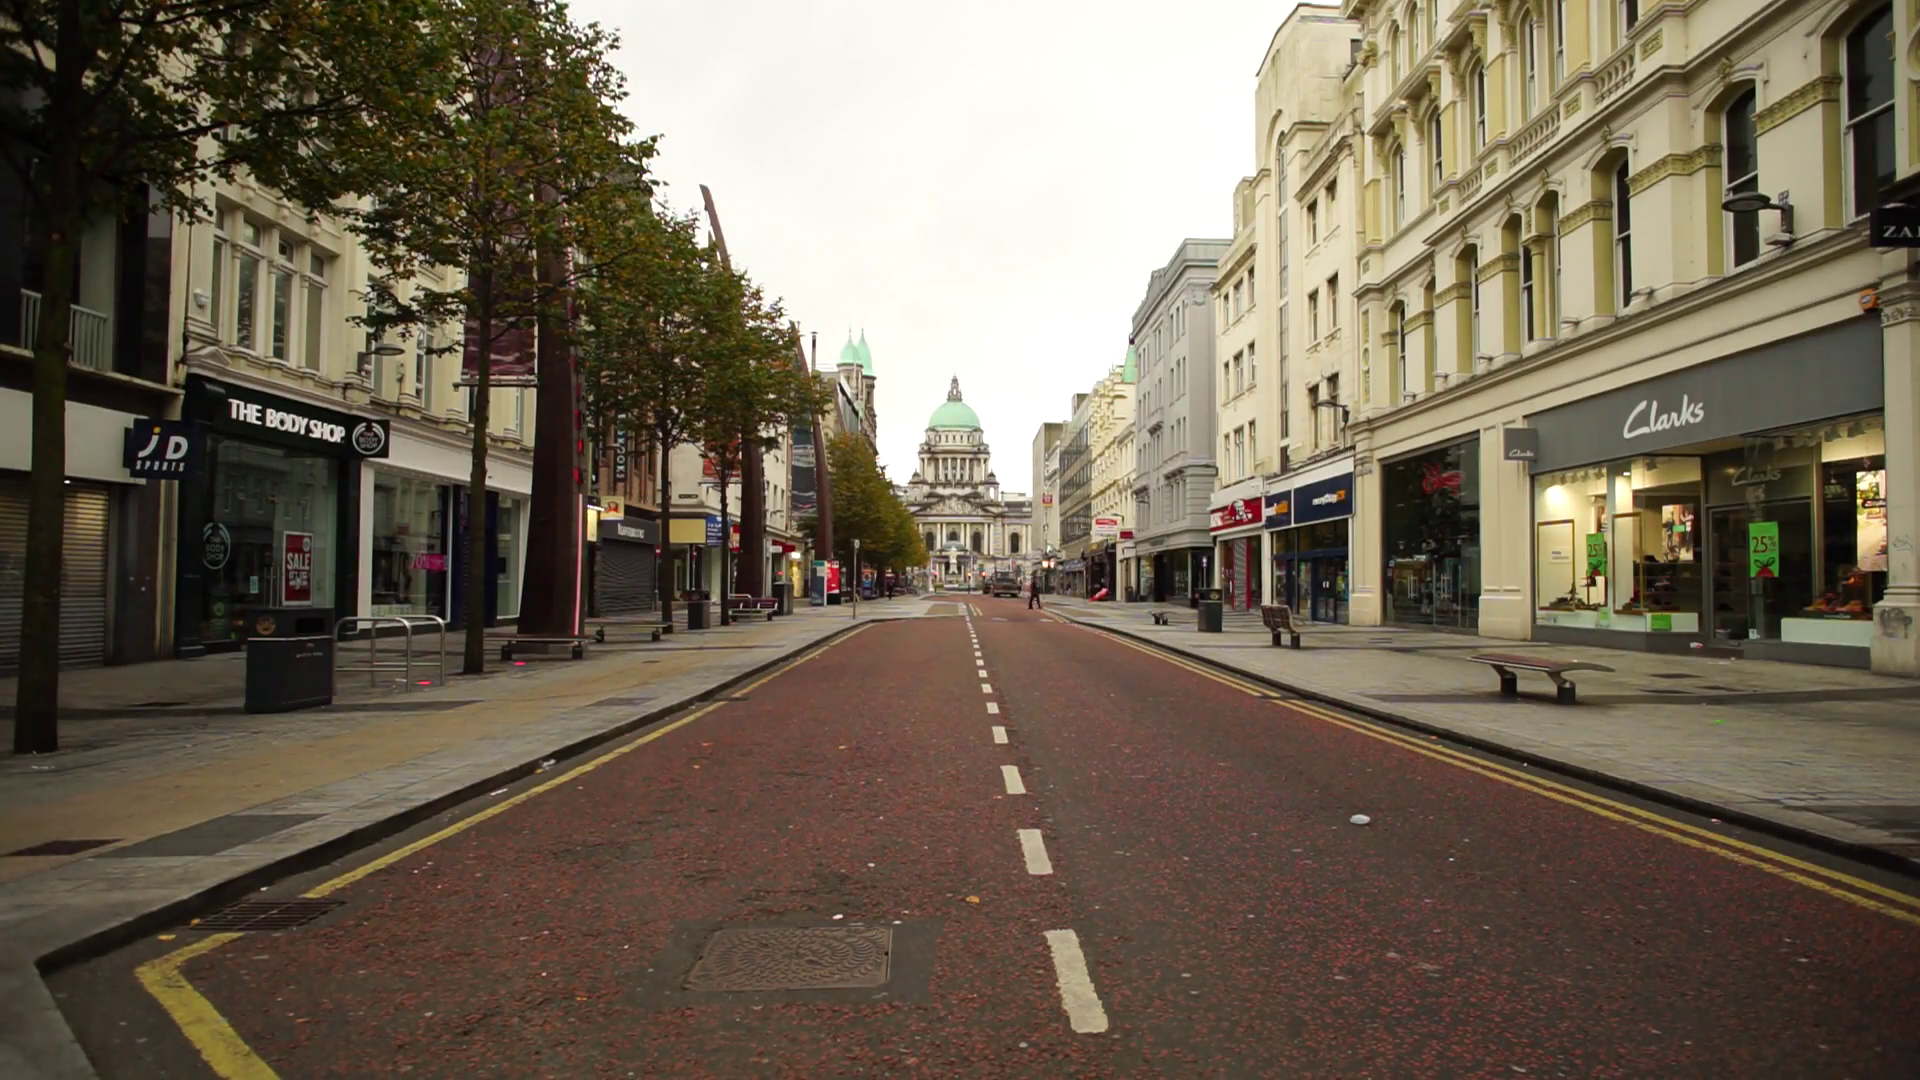 Belfast City Hall Donegal Place outside Clarks empty street Wide ...